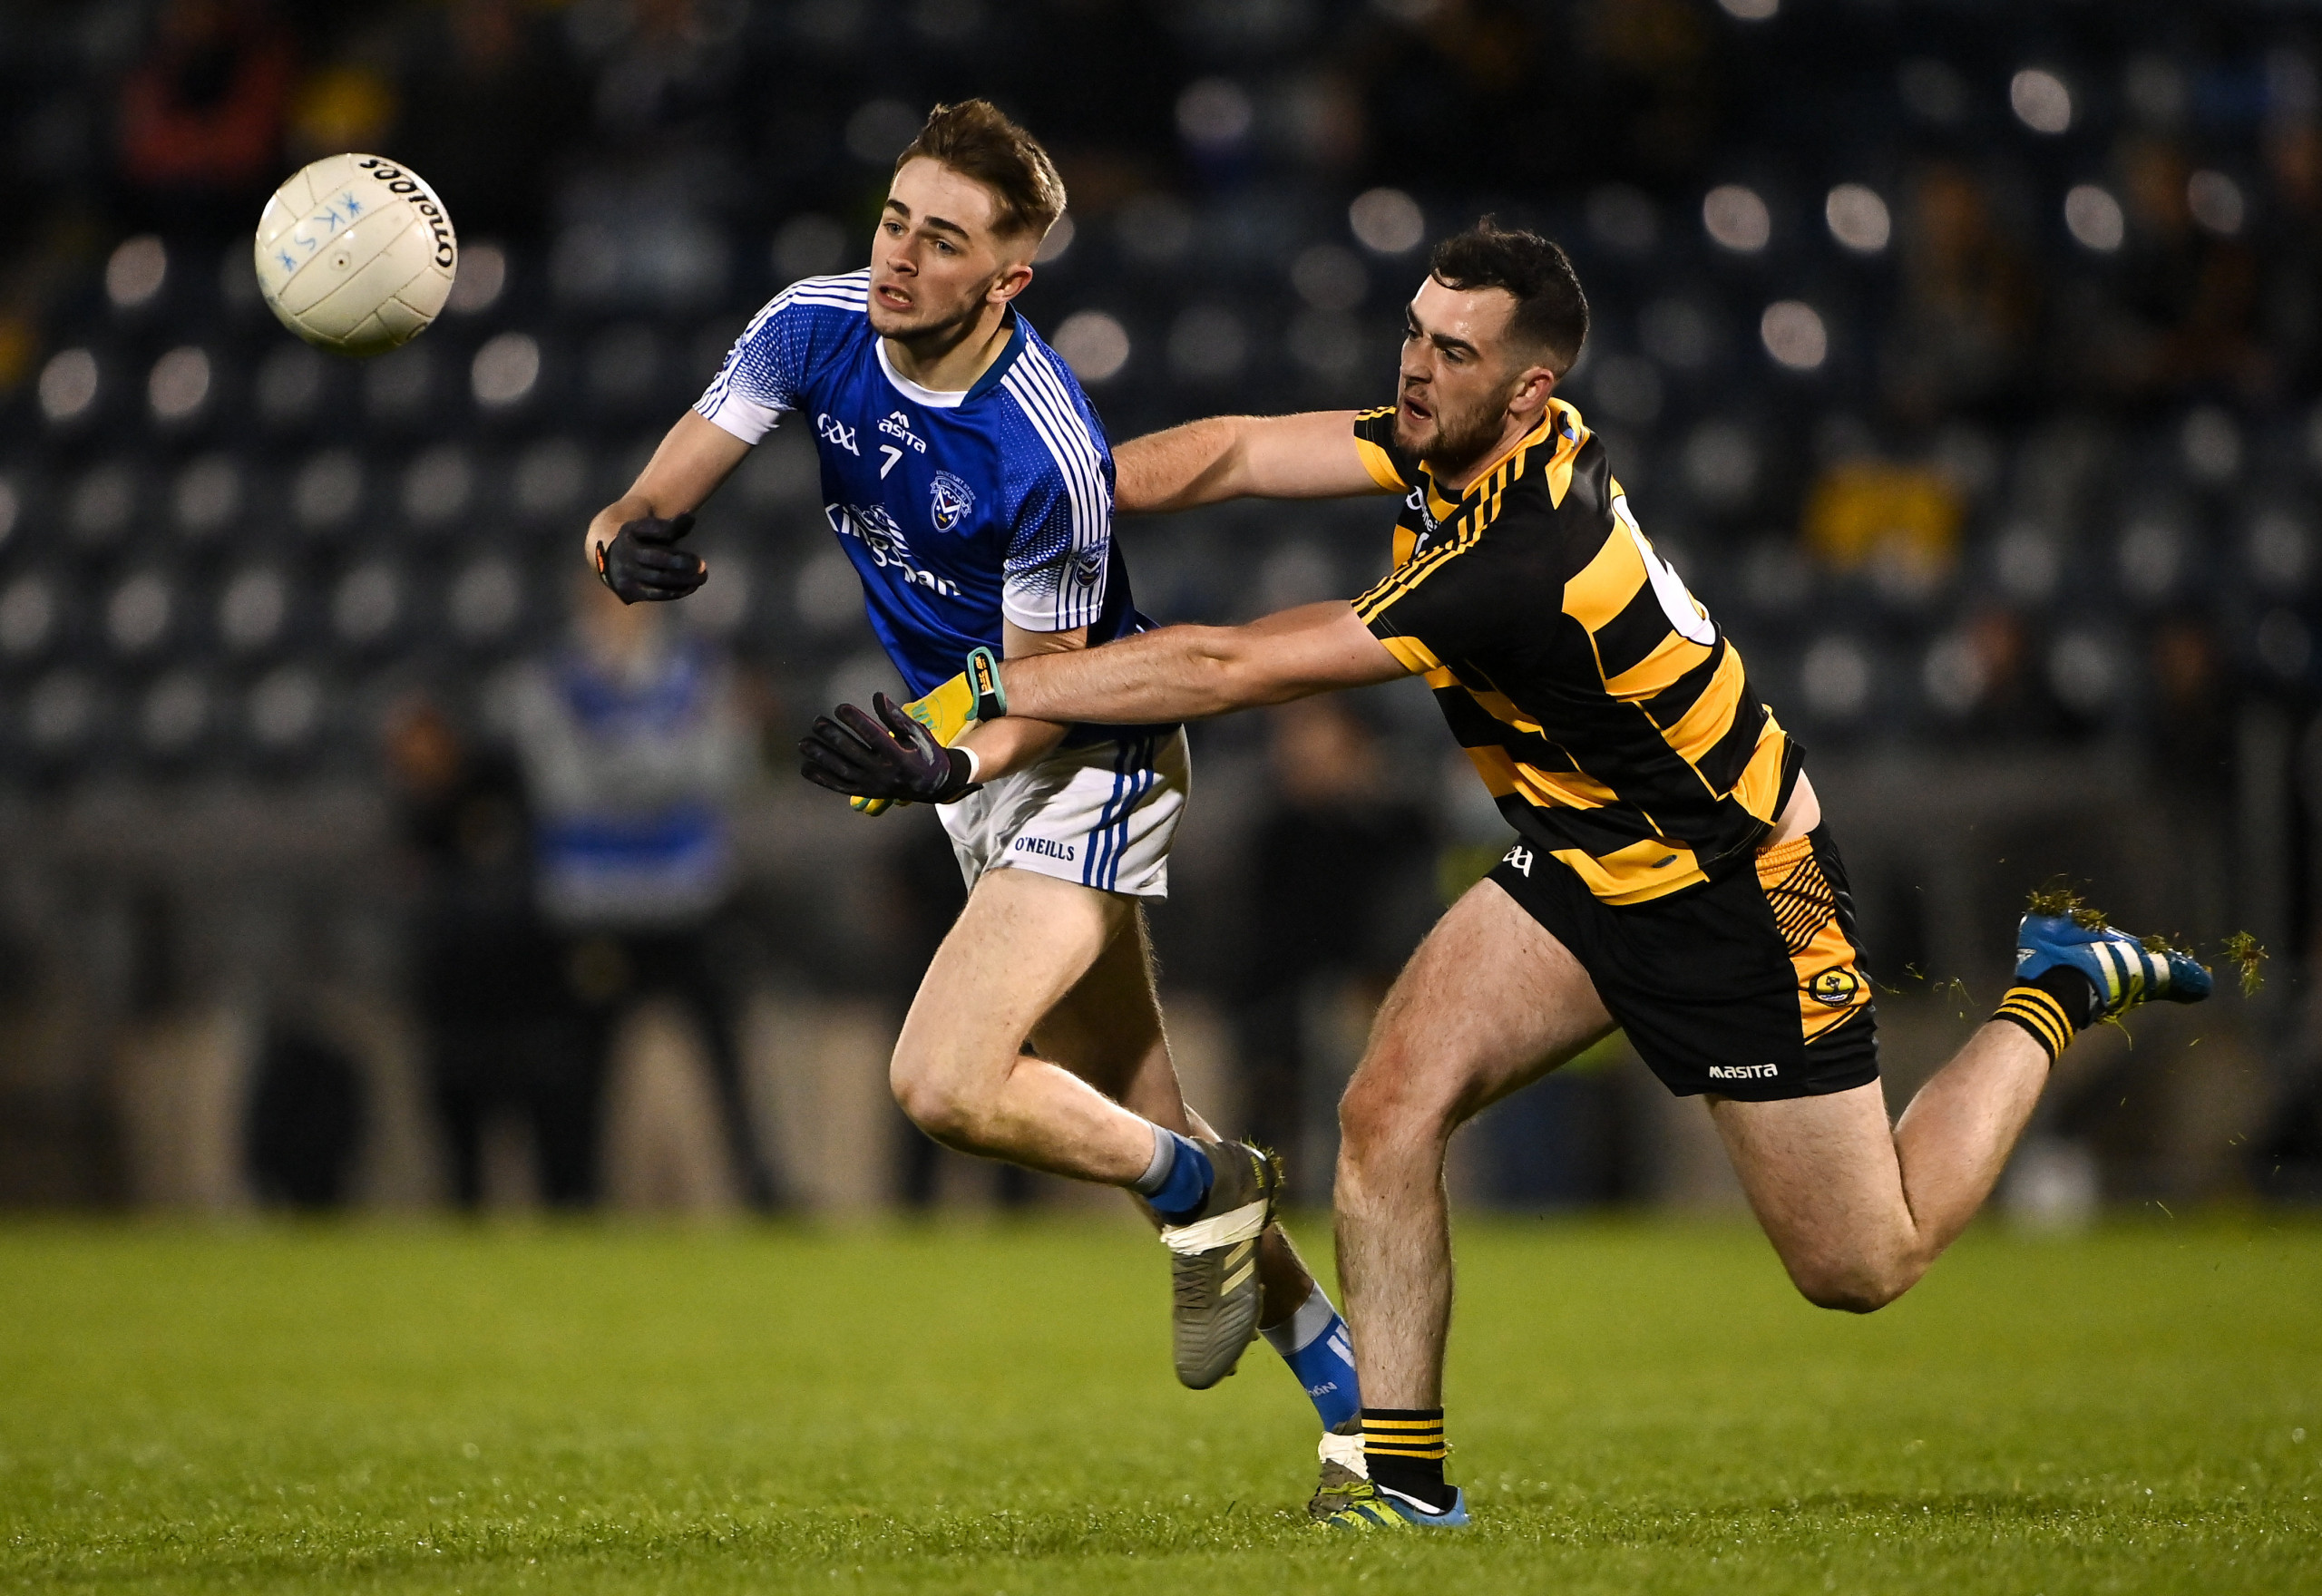 Preview: Senior county football titles up for grabs in Cavan and Derry